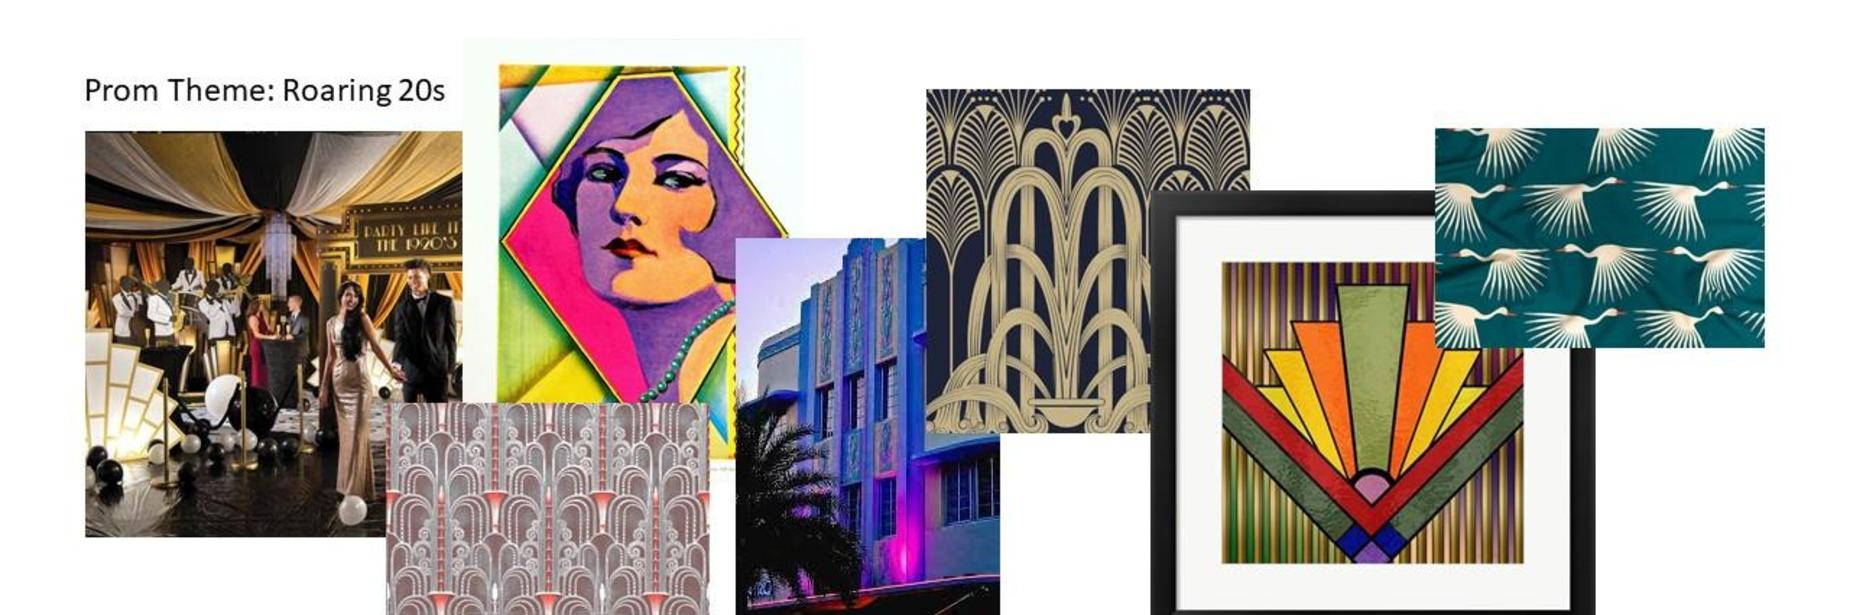 Winning Prom Theme: Roaring 20s; Images featuring a party decorated in 20s decor, a multi colored woman with purple hair; another image has a stained glass window with art deco geometric shapes; several images are of art deco style wall paper--one with flying flamingos that look like palm fronds; one image is of a building that is in the art deco style that is lit up with pink and purple lights.